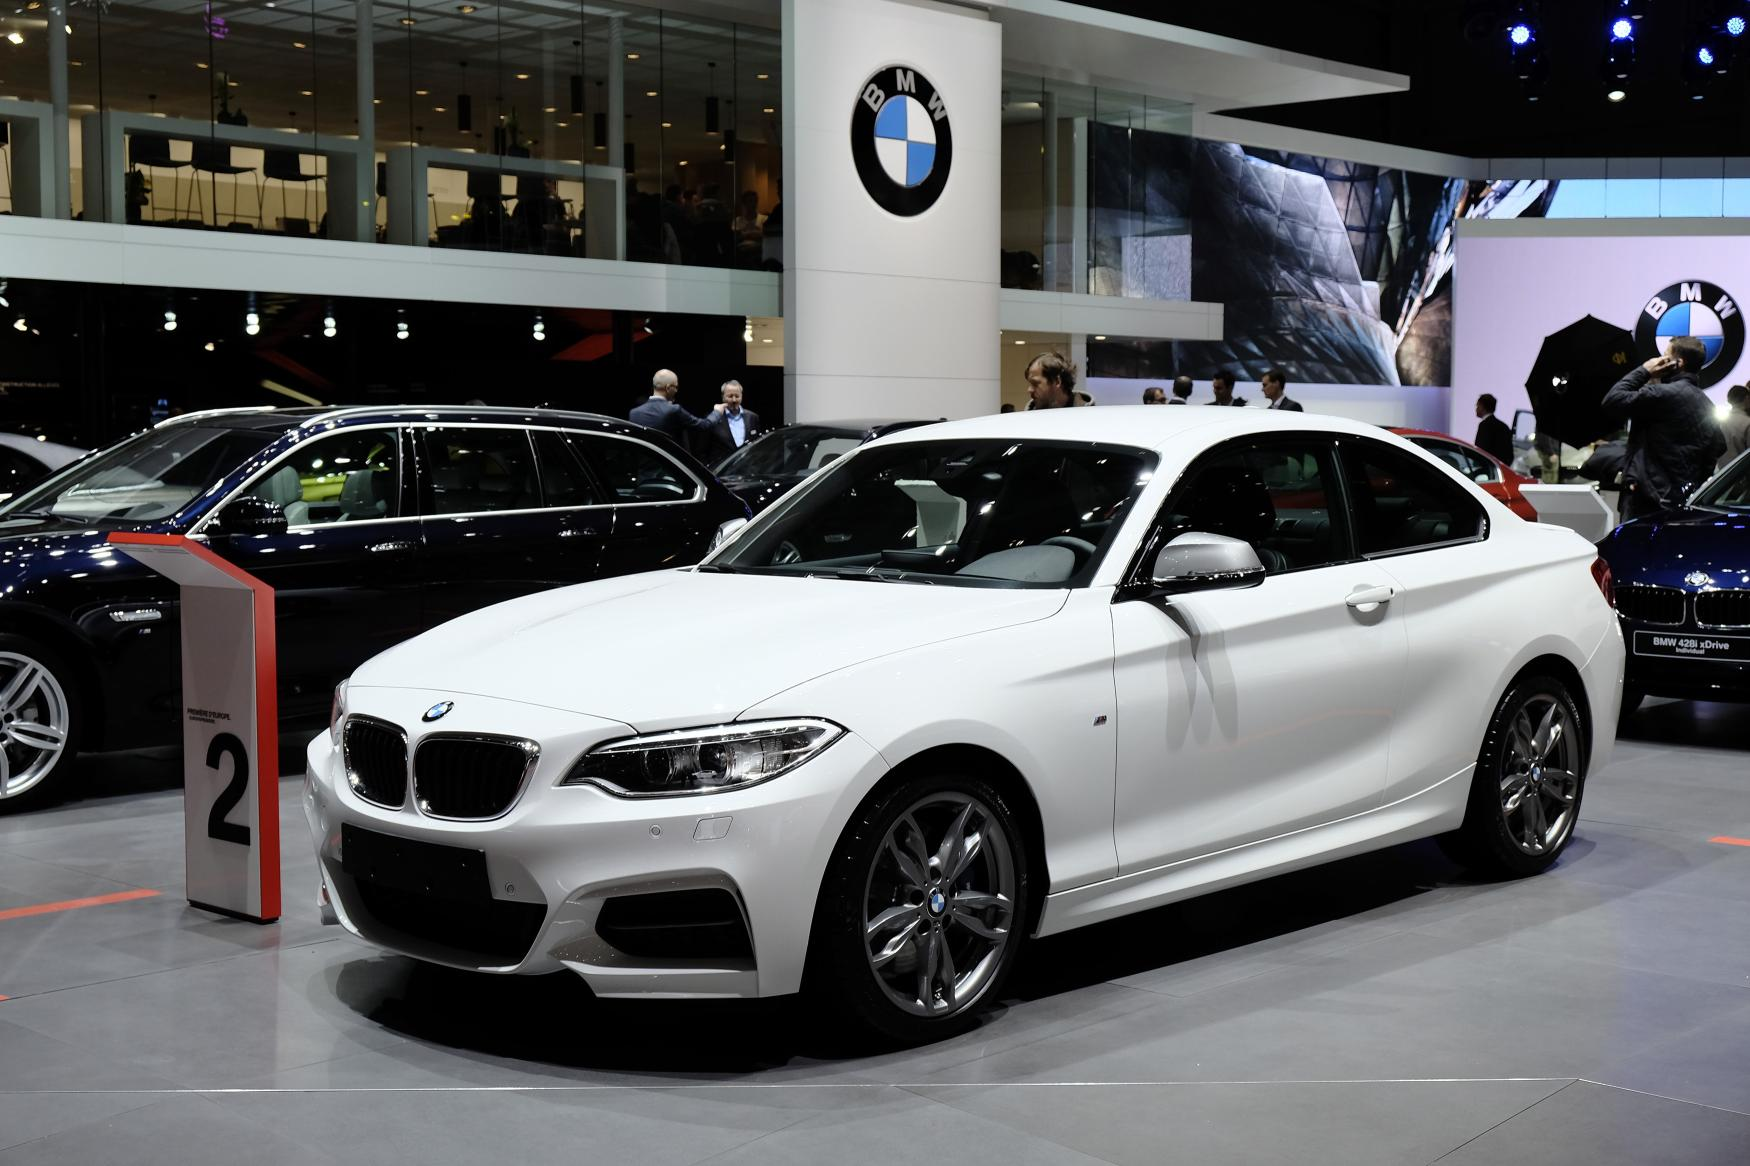 2014 Bmw M235i White Images Galleries